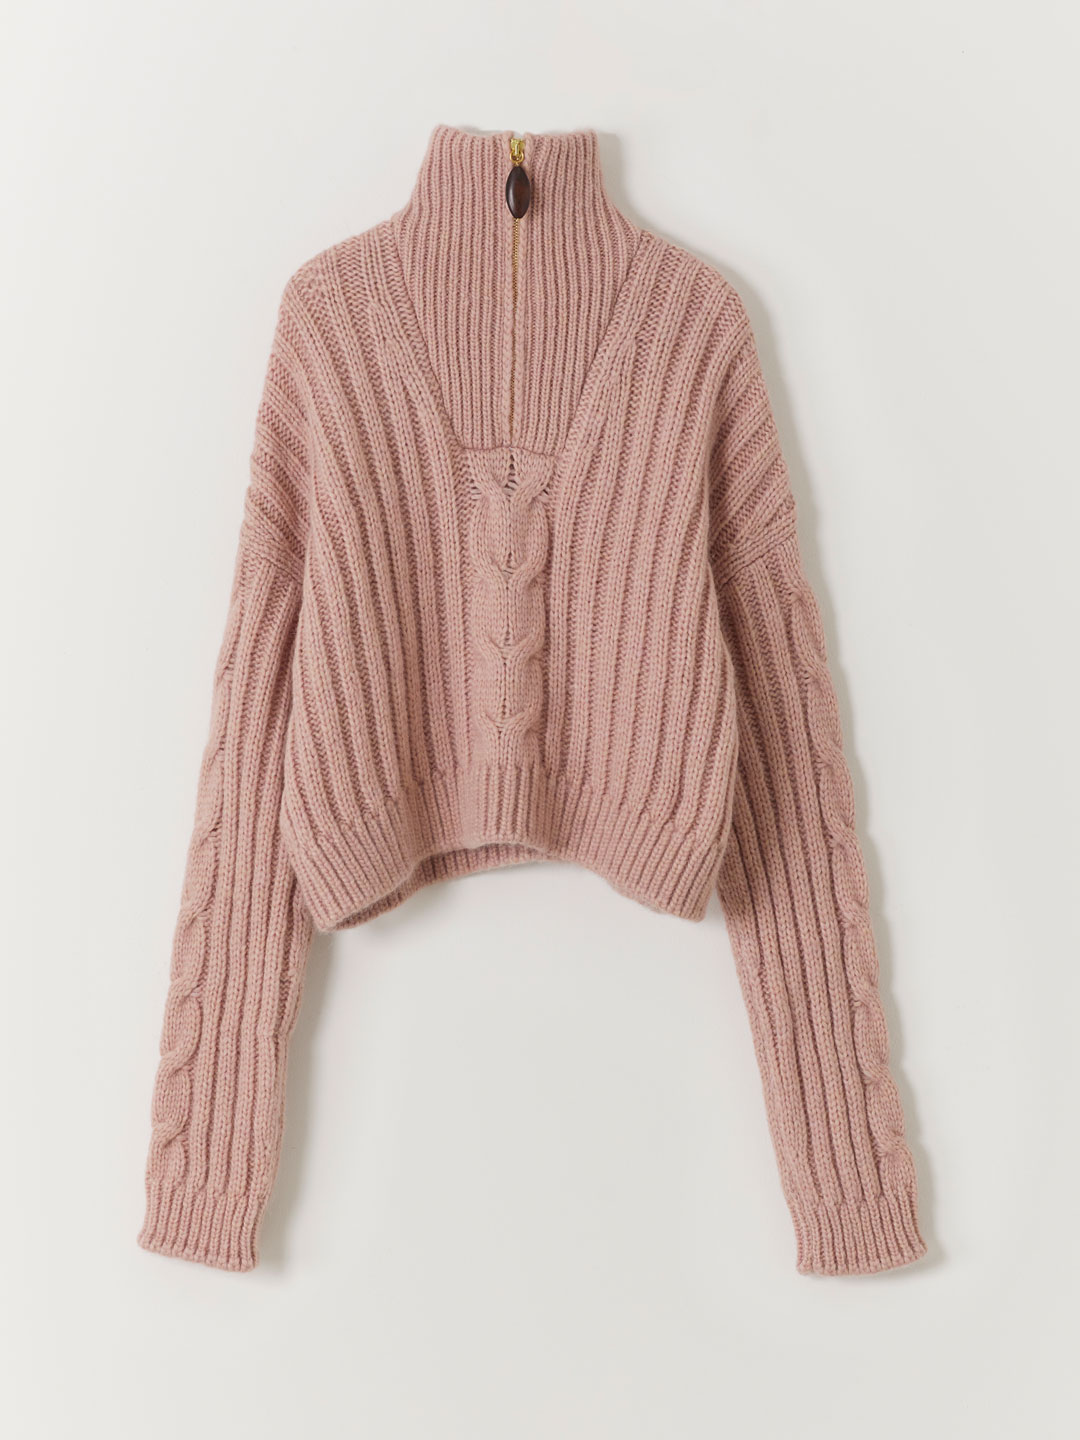 Eria Knitted Sweater - Pink